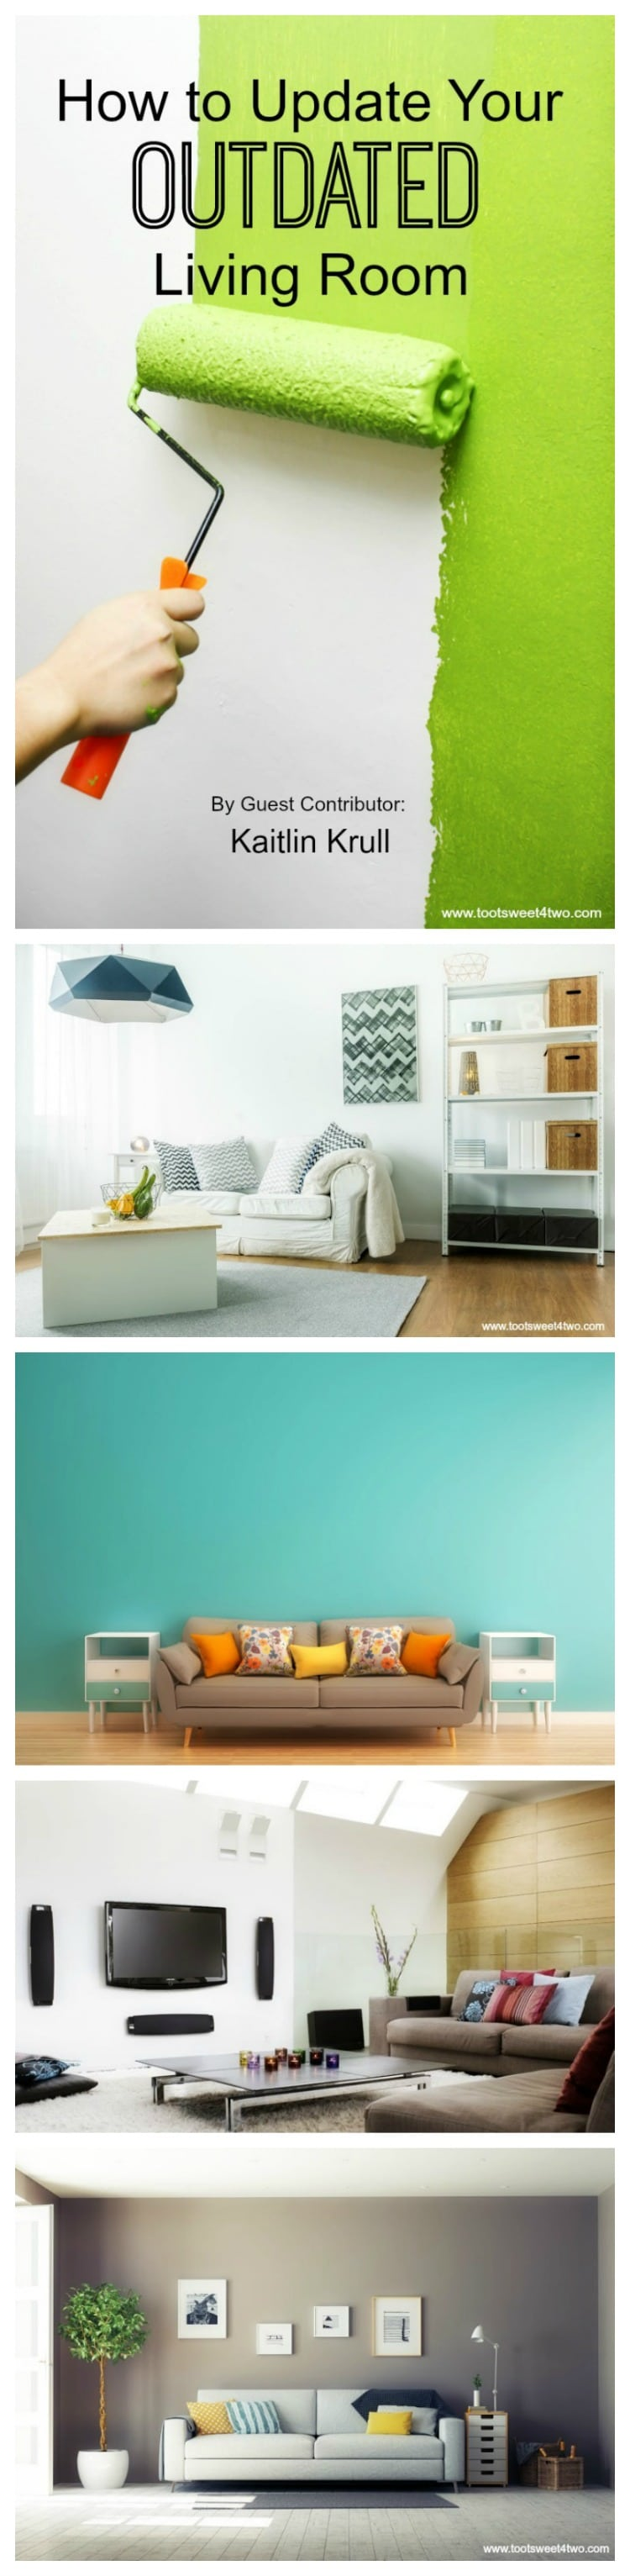 One of the most loved rooms in the home - and therefore probably most outdated - is the living room. Learn how to update your outdated living room with these easy, budget-friendly tips and ideas to stay on trend with today's decor. | www.tootsweet4two.com